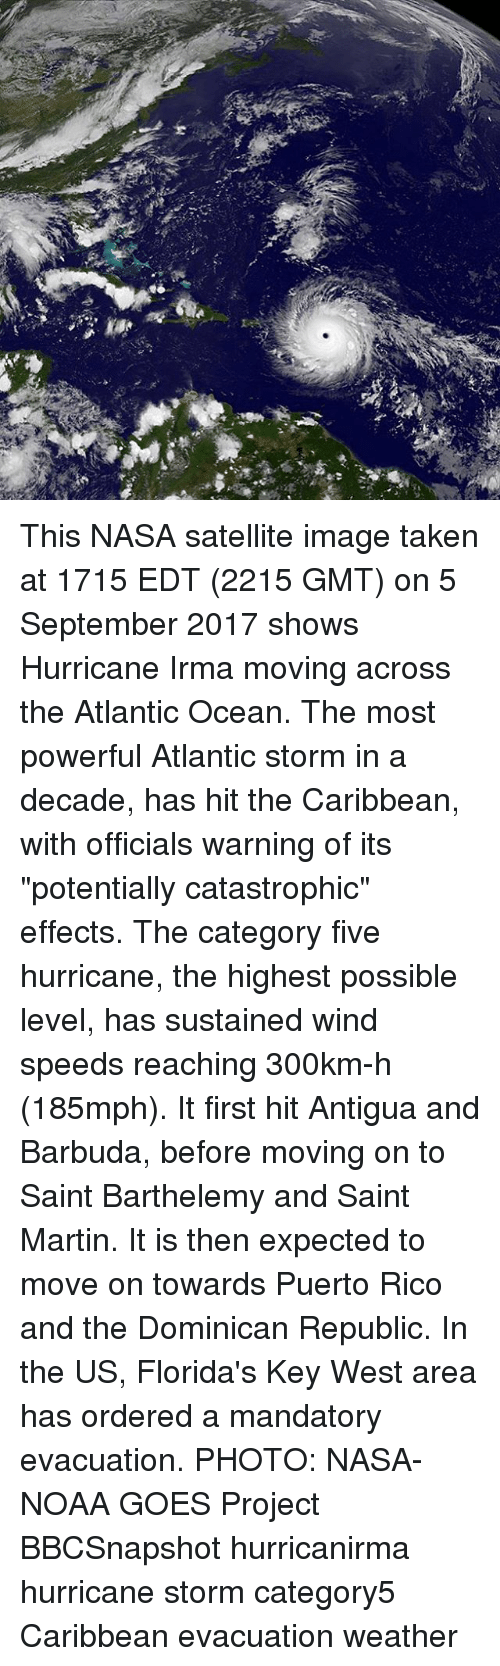 """2017: This NASA satellite image taken at 1715 EDT (2215 GMT) on 5 September 2017 shows Hurricane Irma moving across the Atlantic Ocean. The most powerful Atlantic storm in a decade, has hit the Caribbean, with officials warning of its """"potentially catastrophic"""" effects. The category five hurricane, the highest possible level, has sustained wind speeds reaching 300km-h (185mph). It first hit Antigua and Barbuda, before moving on to Saint Barthelemy and Saint Martin. It is then expected to move on towards Puerto Rico and the Dominican Republic. In the US, Florida's Key West area has ordered a mandatory evacuation. PHOTO: NASA-NOAA GOES Project BBCSnapshot hurricanirma hurricane storm category5 Caribbean evacuation weather"""